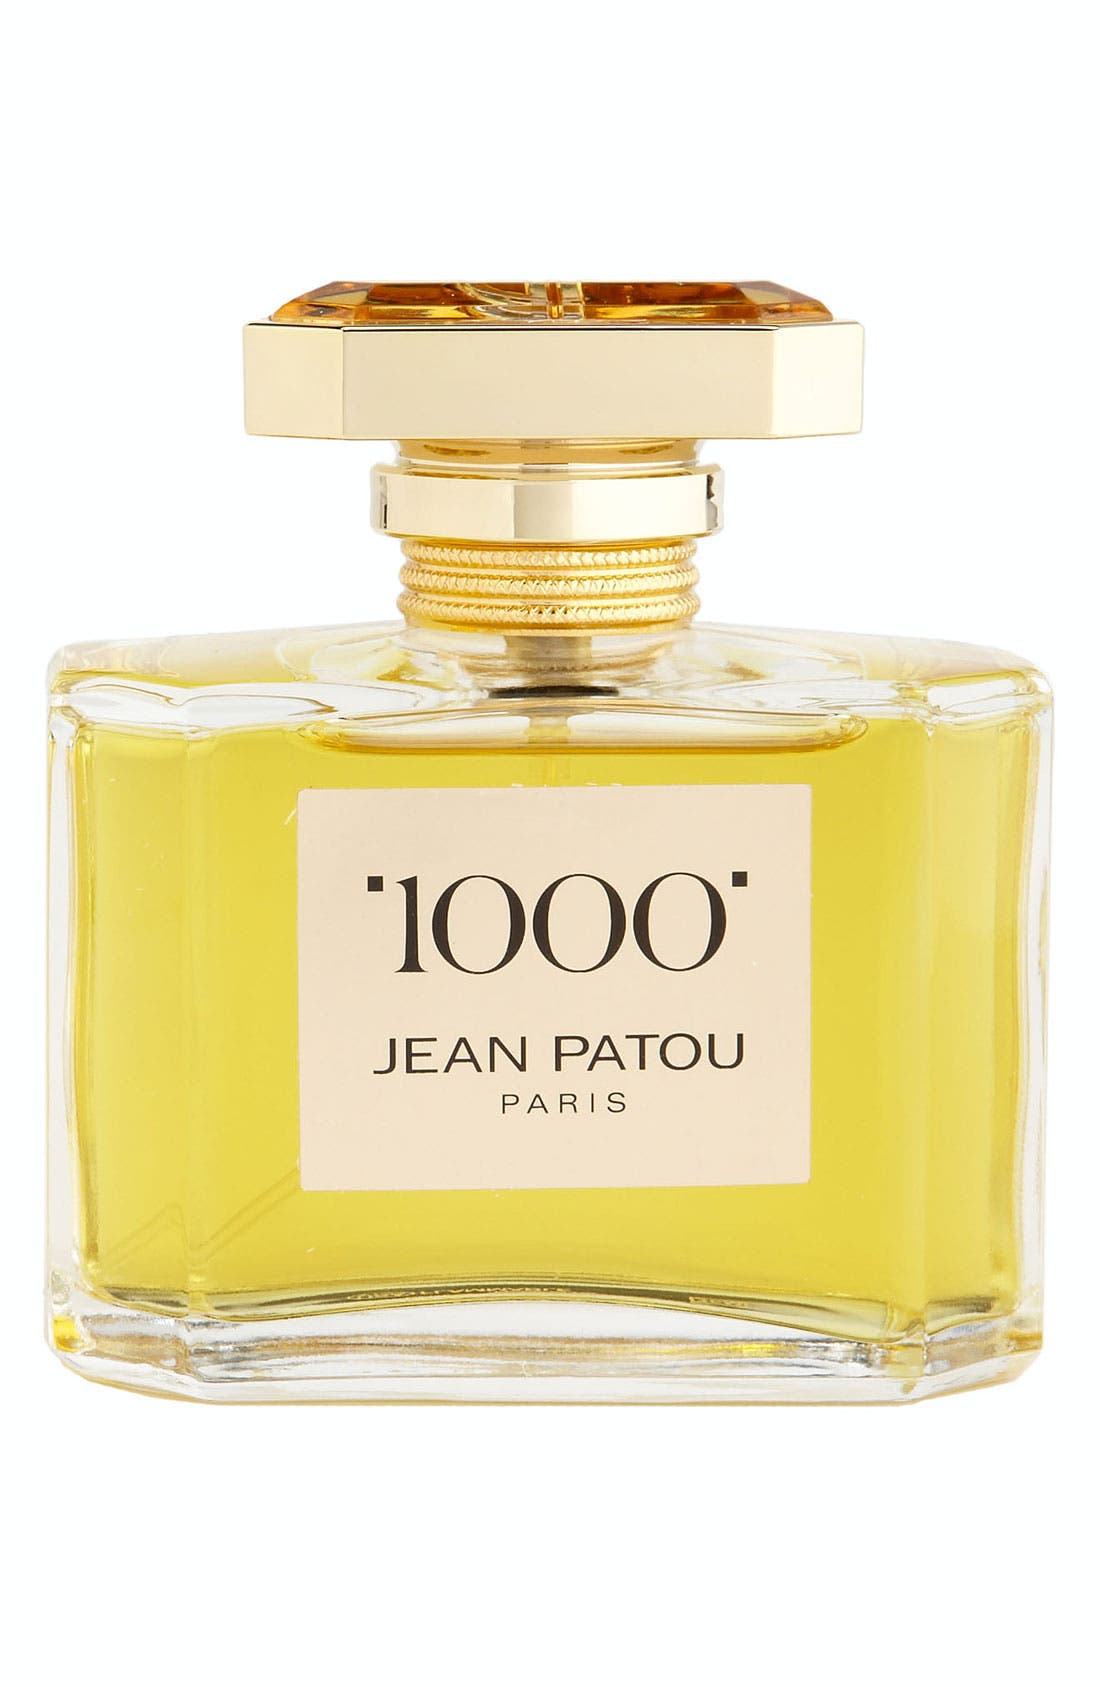 JEAN PATOU 1000 by Jean Patou Eau de Parfum Jewel Spray, Main, color, NO COLOR